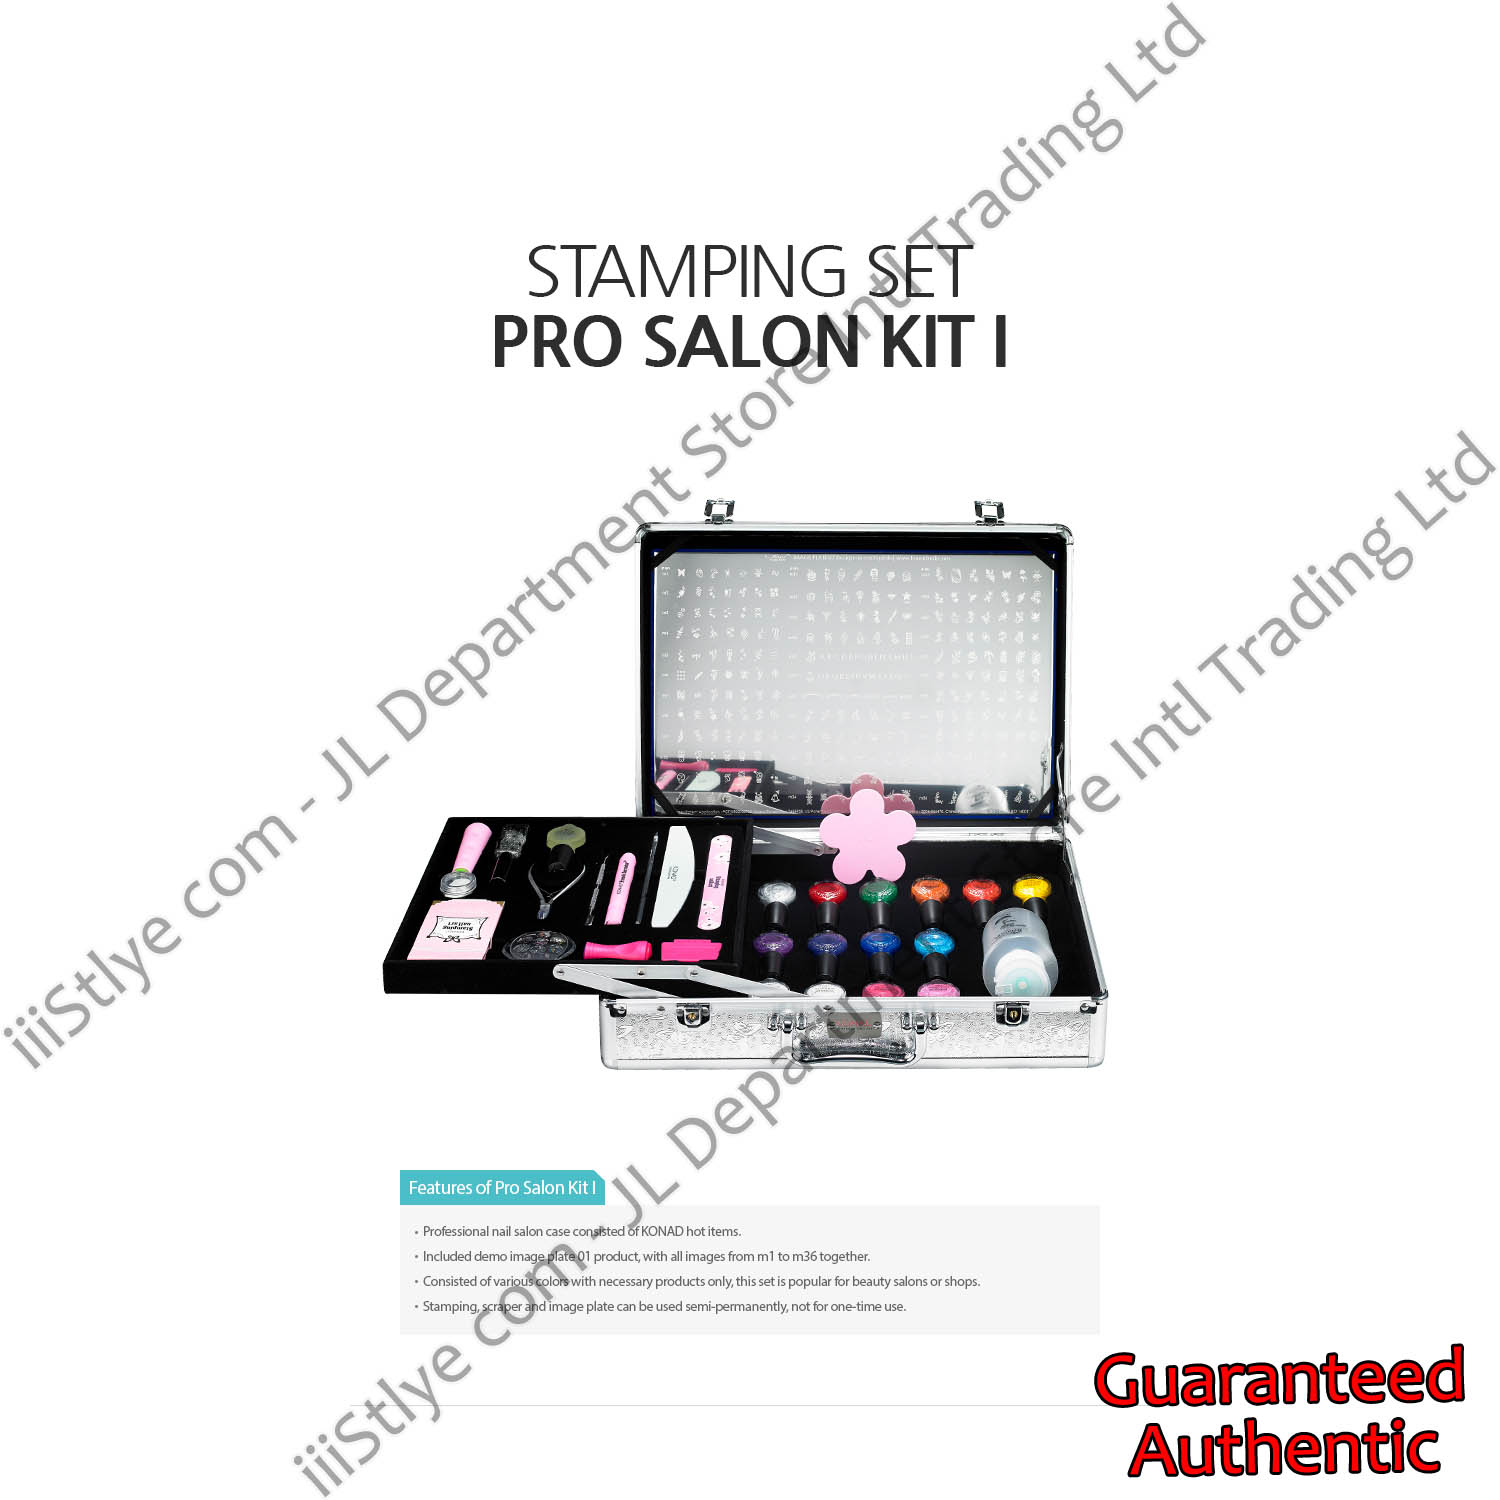 stamping set pro salon kit I